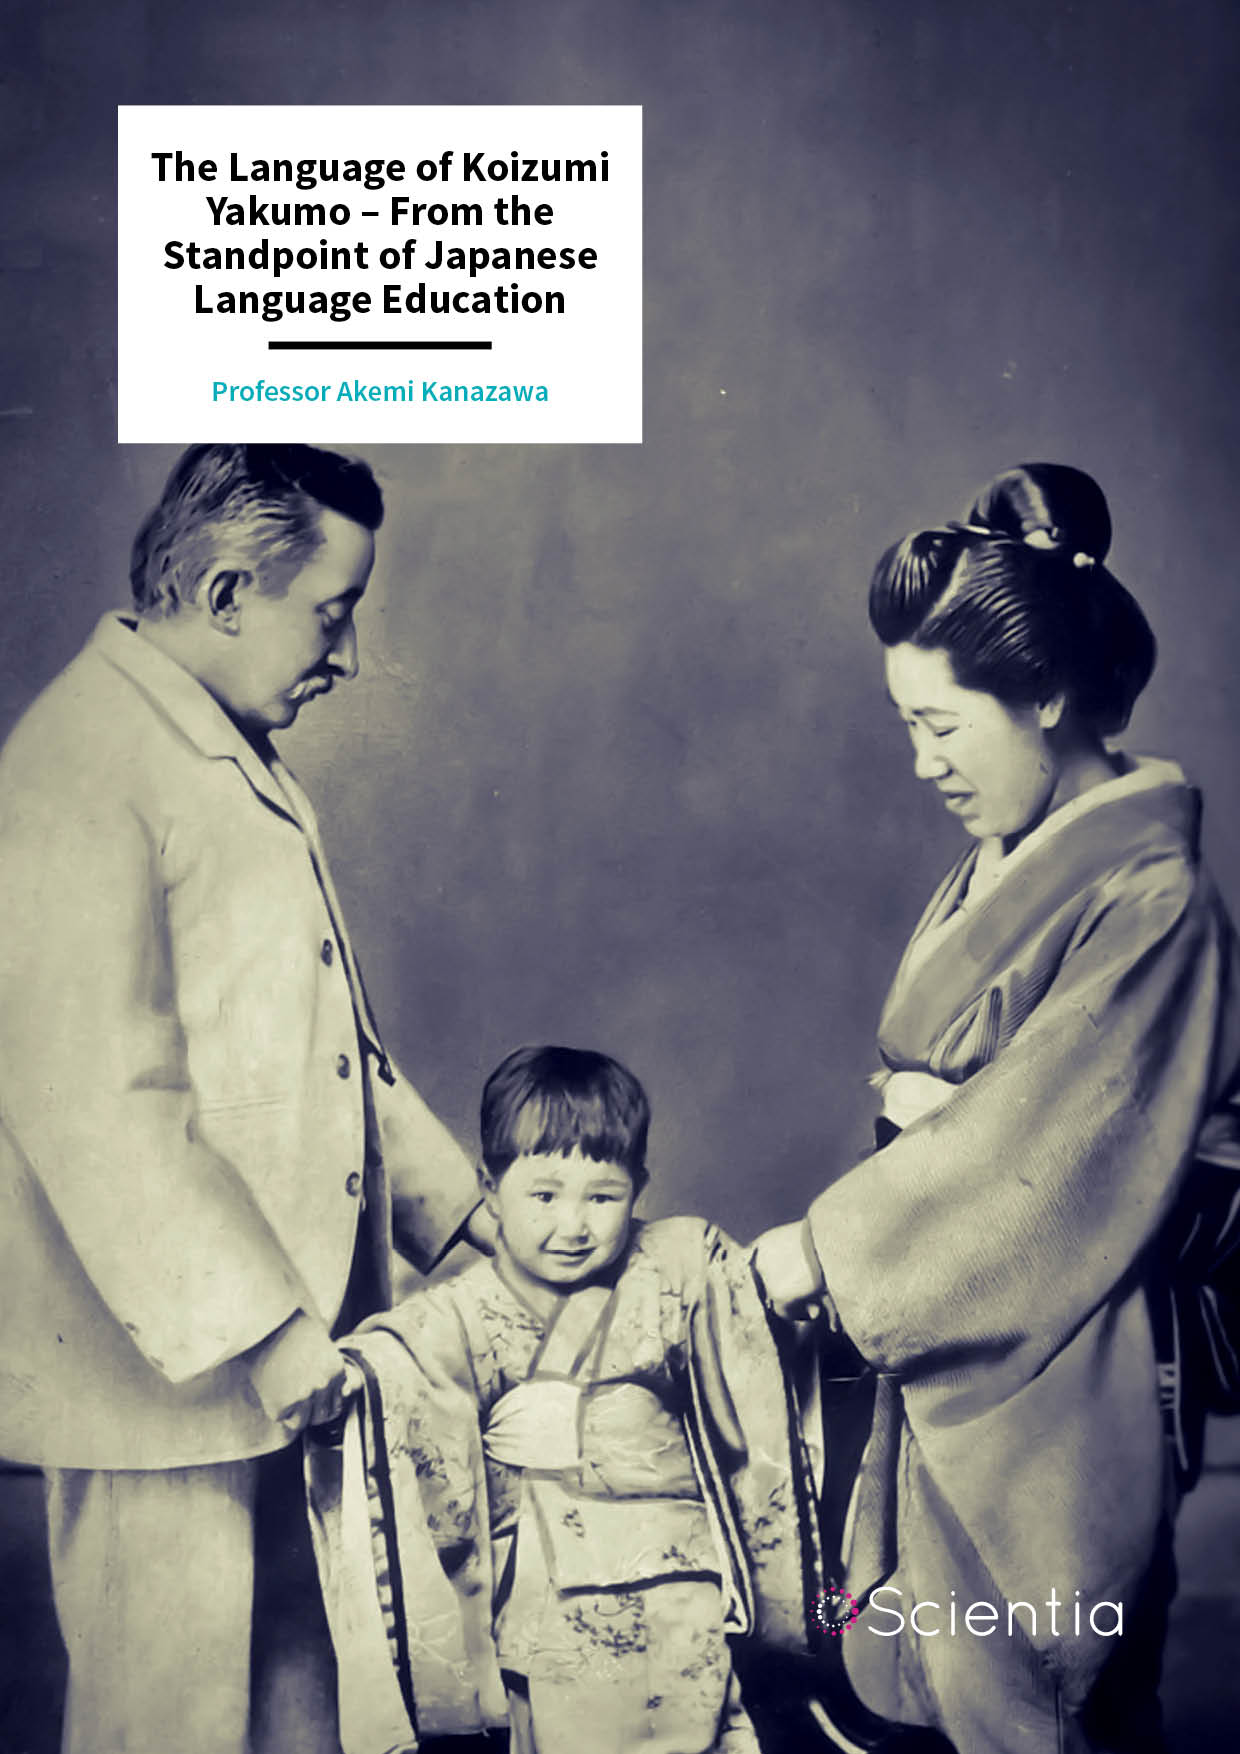 Professor Akemi Kanazawa – The Language of Koizumi Yakumo – From the Standpoint of Japanese Language Education